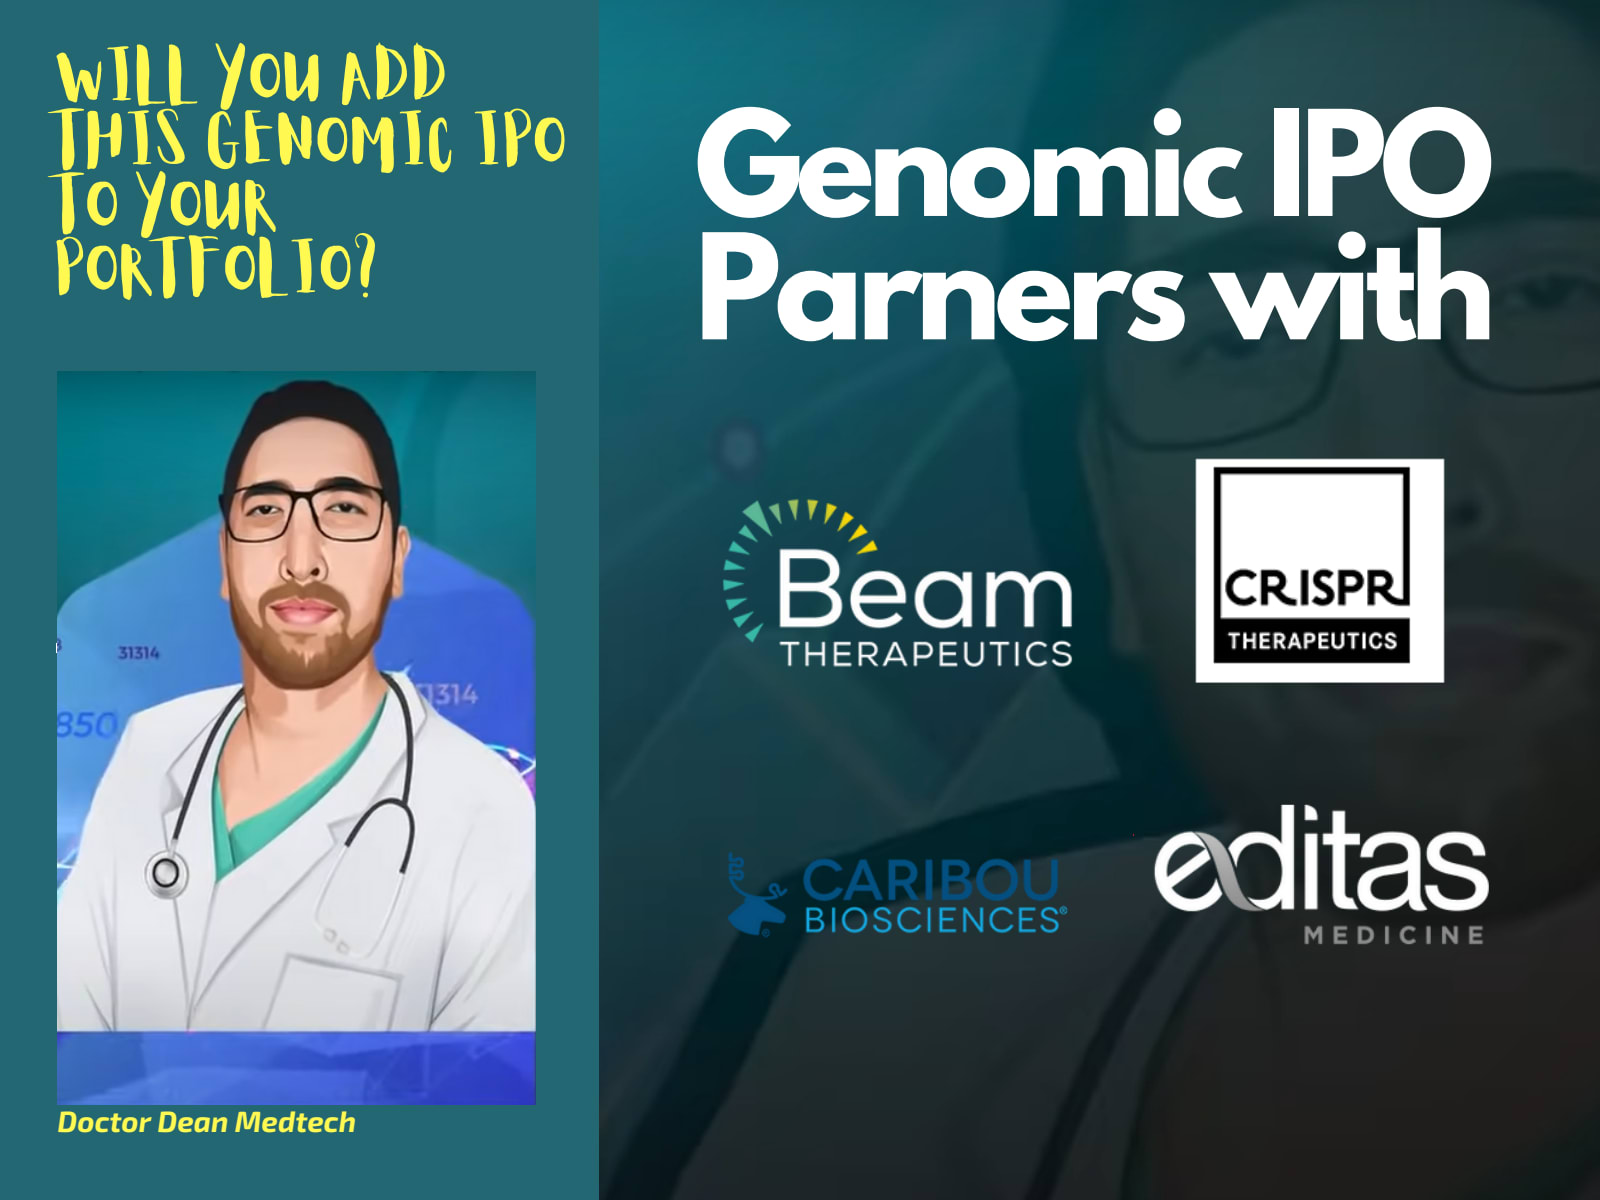 Will you add this Genomic IPO to your portfolio?